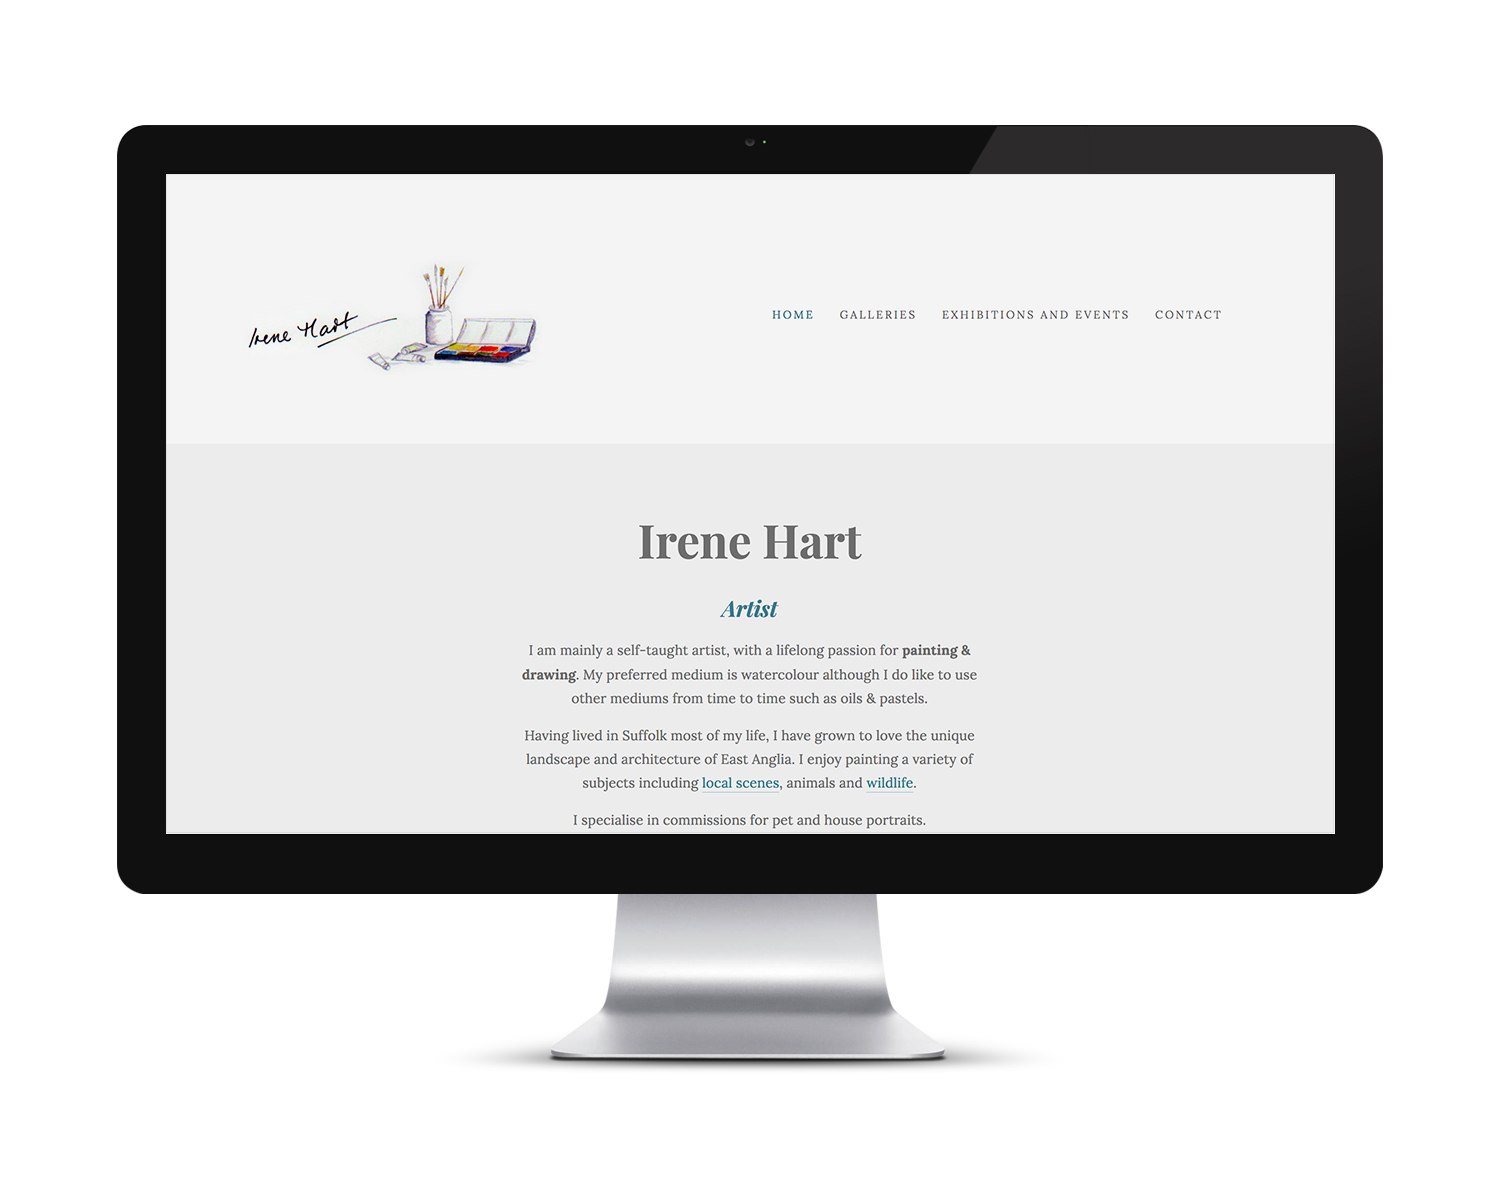 Home page design for Irene Hart Watercolour Artist at launch.